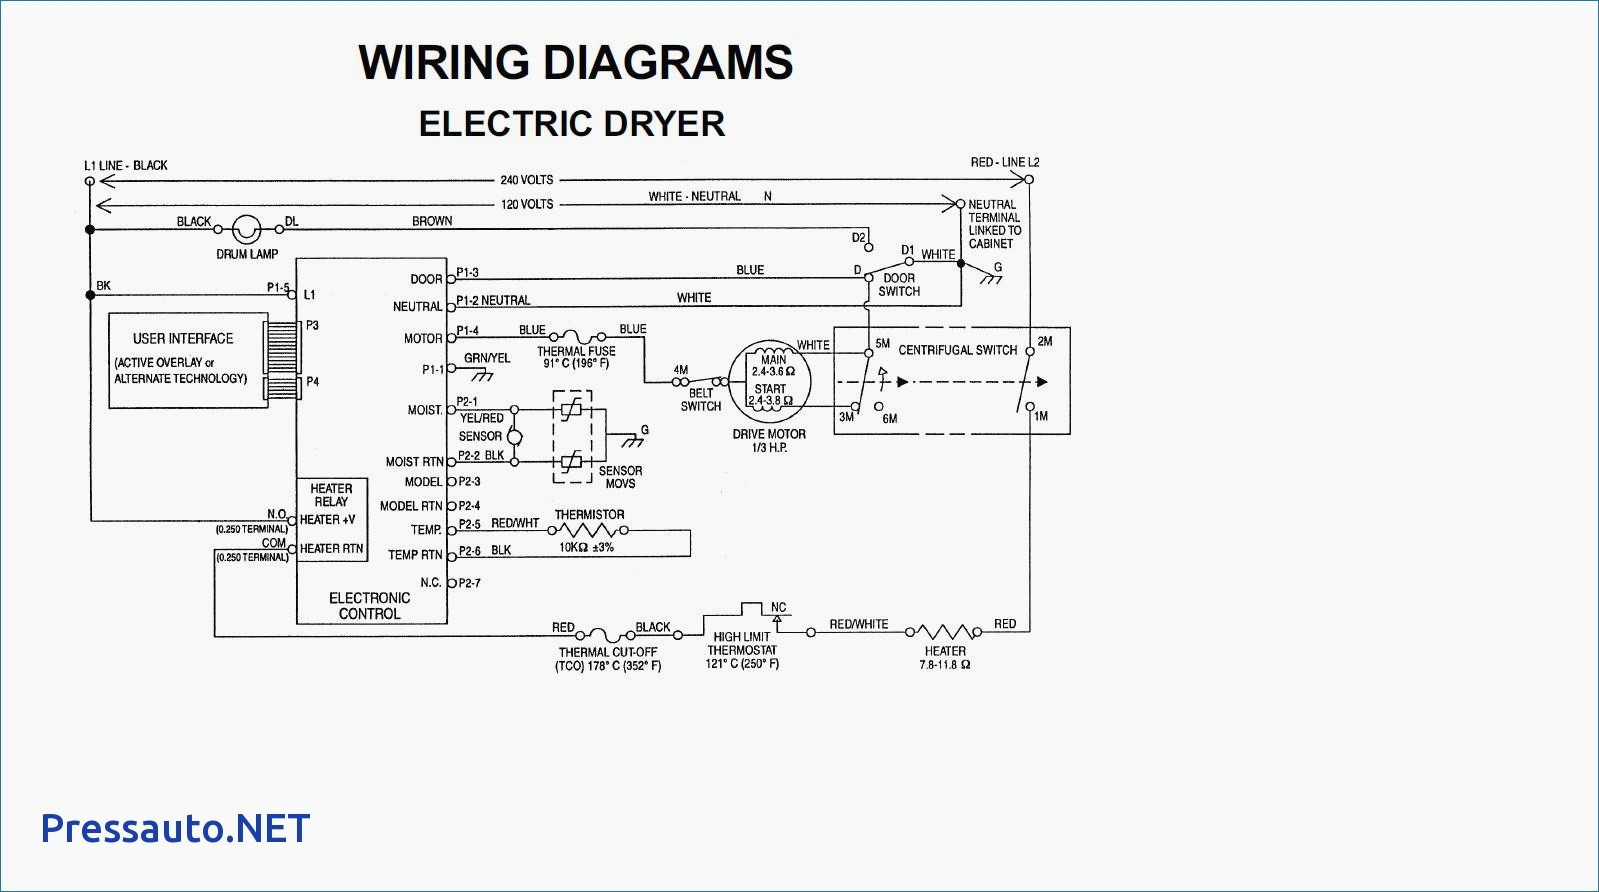 4 Wire Dryer Plug Diagram